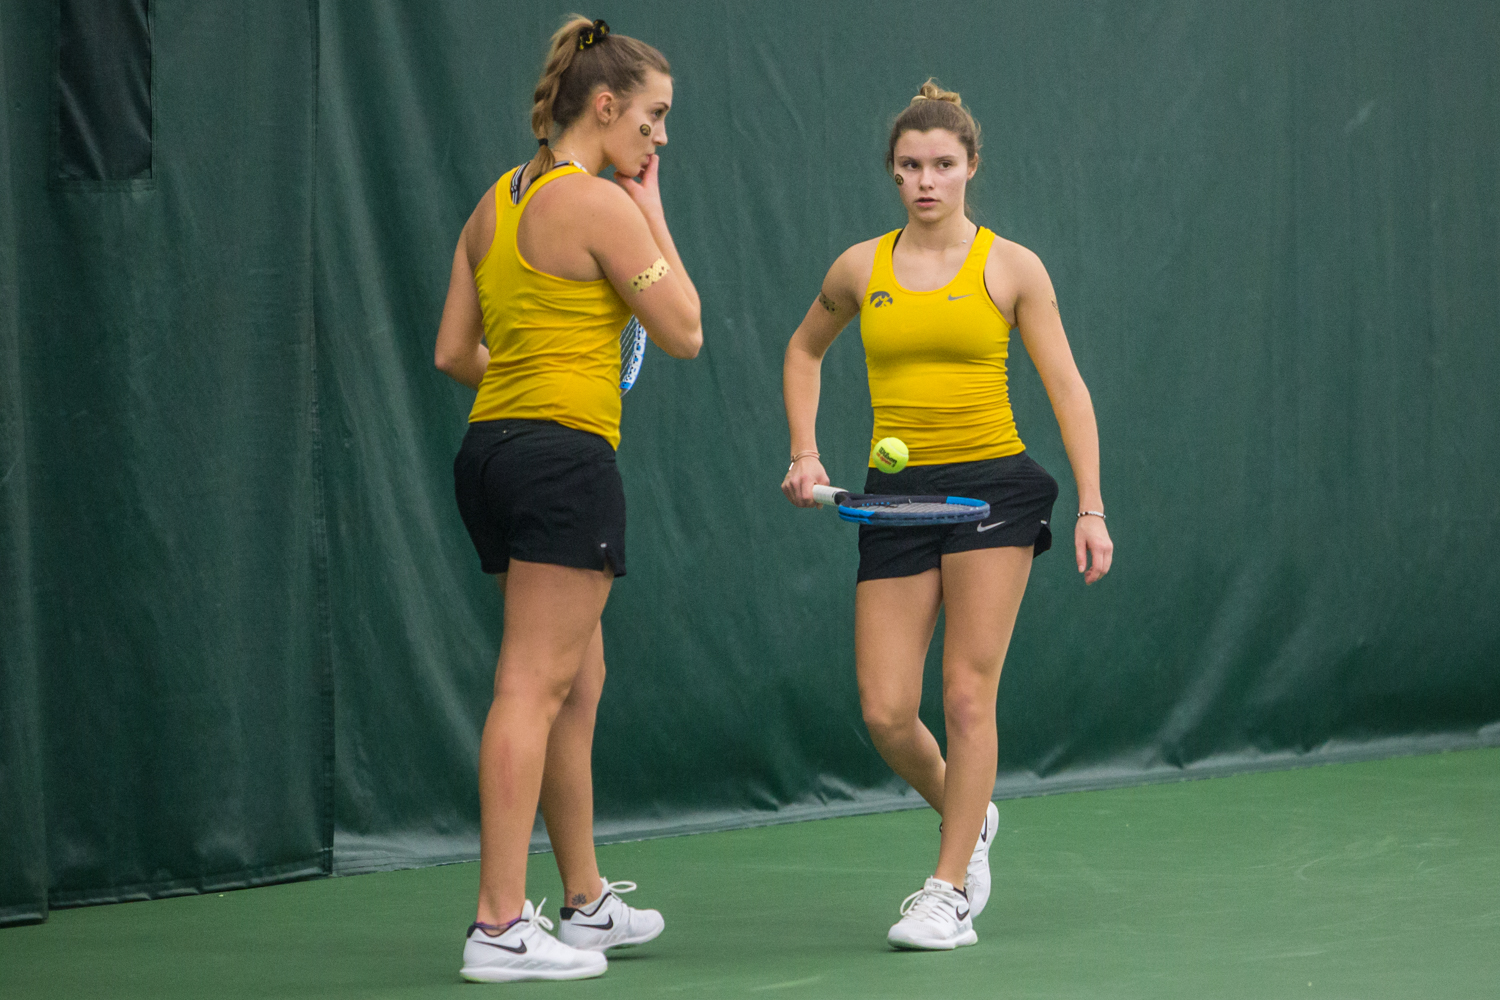 Iowa%27s+Cloe+Ruette+%28right%29+and+Ashleigh+Jacobs+converse+during+a+women%27s+tennis+matchup+between+Iowa+and+Iowa+State+at+the+Hawkeye+Tennis+and+Recreation+Complex+on+Friday%2C+February+8%2C+2019.++The+Hawkeyes+dropped+the+doubles+point+but+swept+singles+matches%2C+defeating+the+Cyclones+4-1.